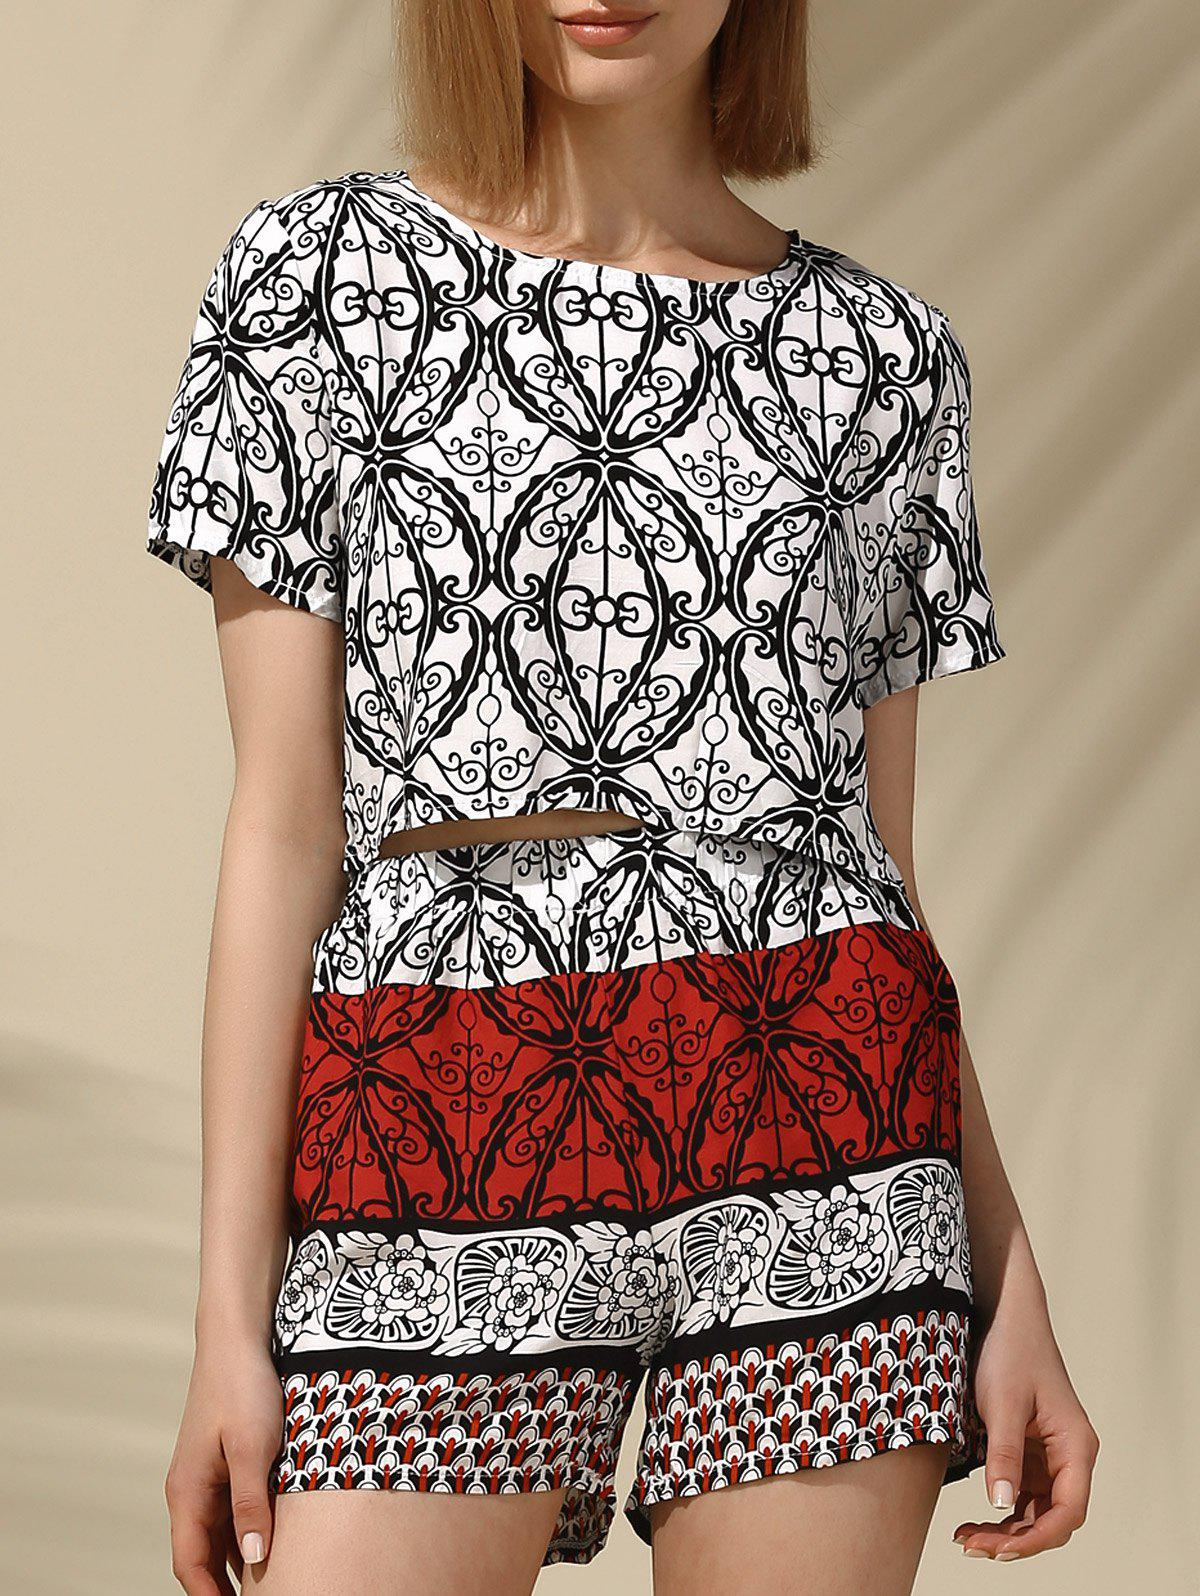 Ethnic Women's Jewel Neck Printed Crop Top and Shorts Set